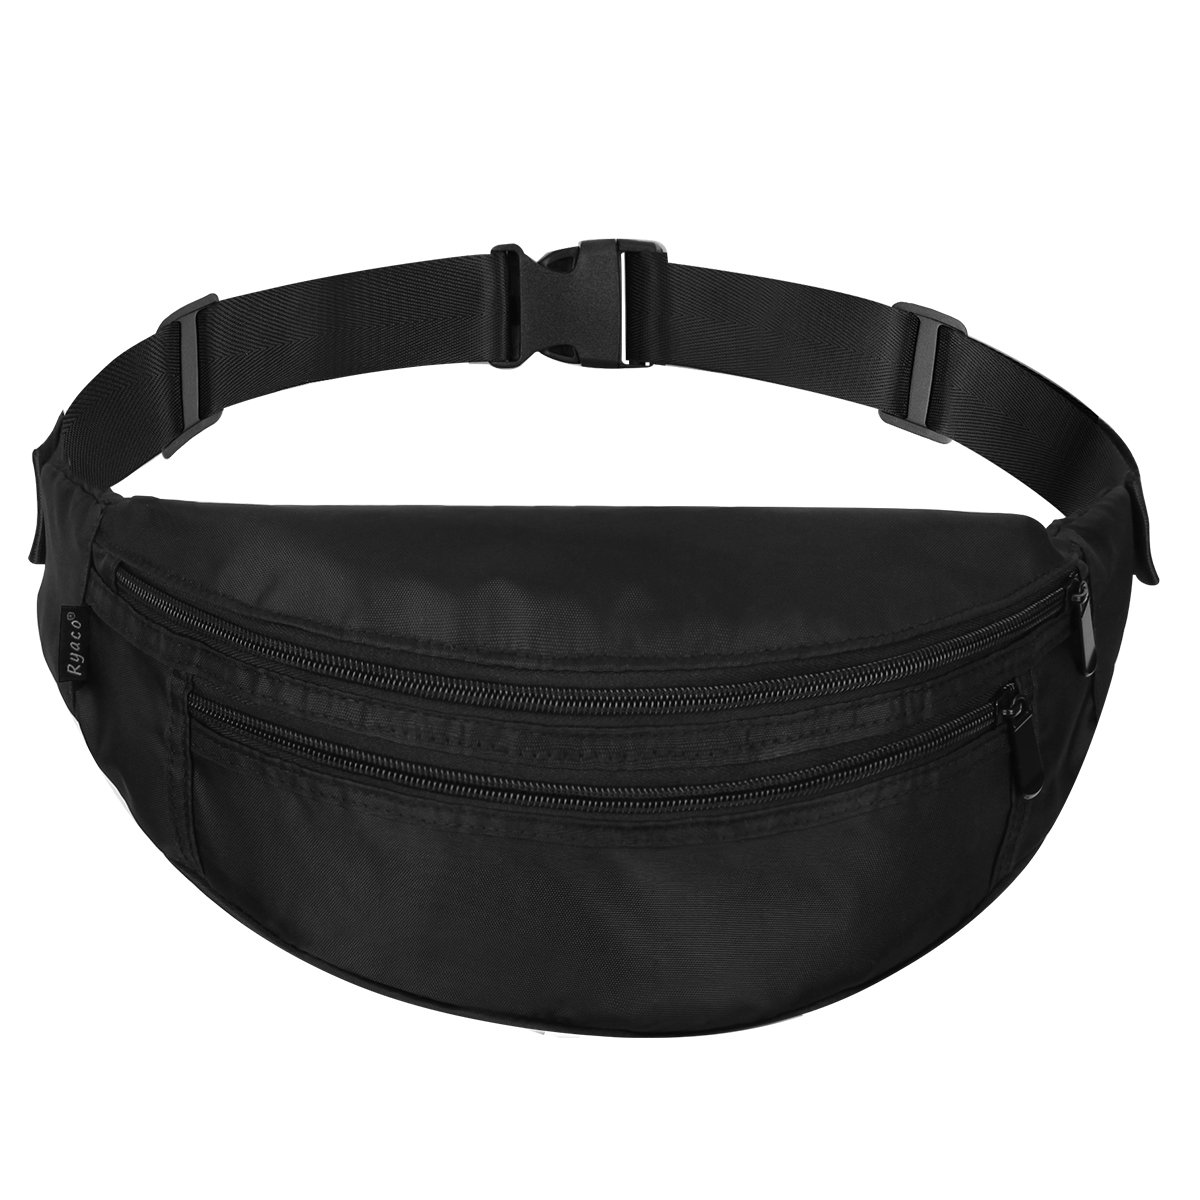 98b780577052 RYACO Bum Bag, Fanny Pack for Men and Women, Water Resistant Waist Pack  Running Belt for Fitness/Exercise/Hiking/Climbing/Hunting/Outdoor Sports